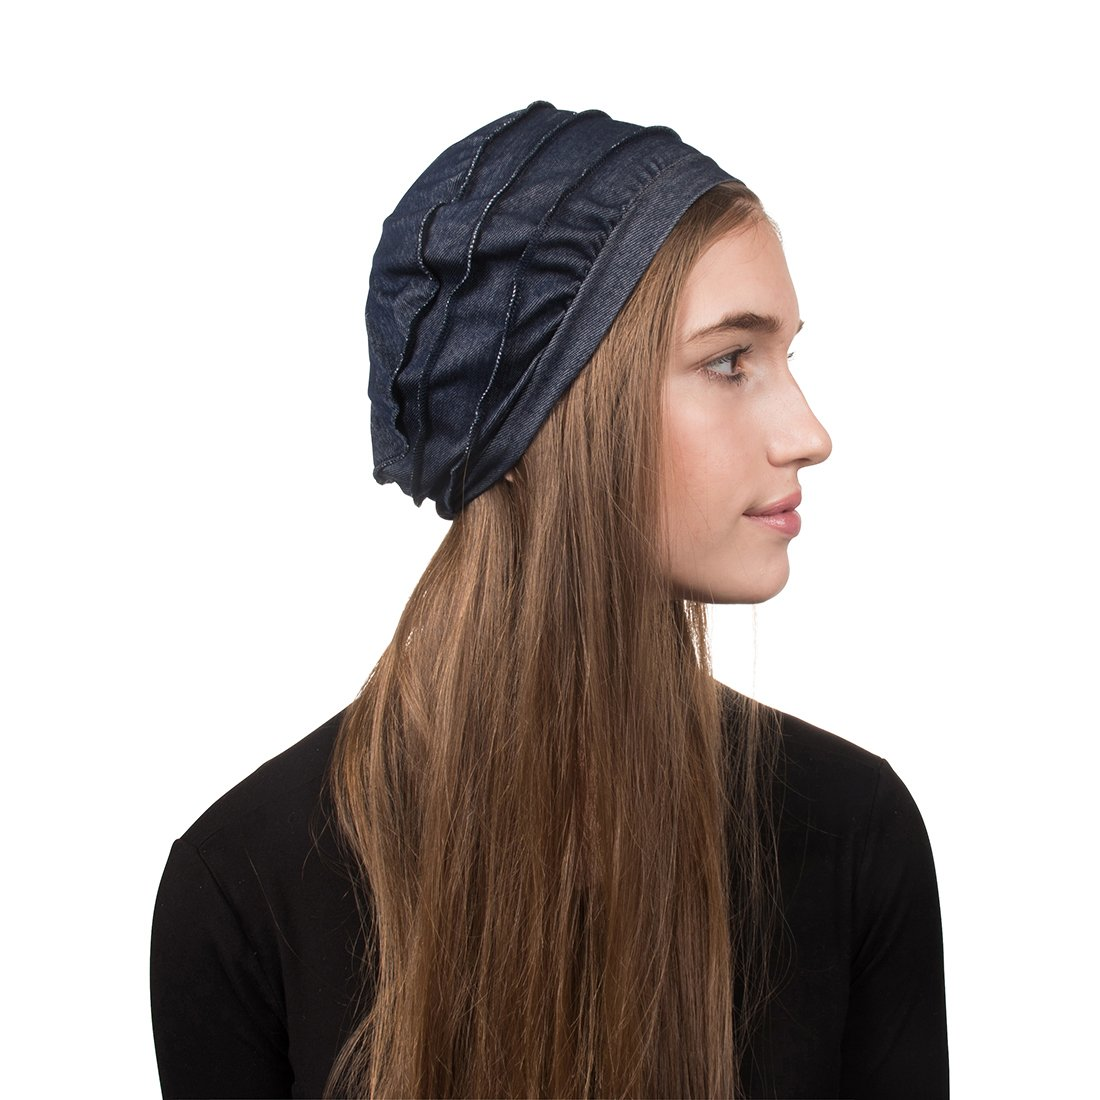 Landana Headscarves 3 Seam Denim Hat Ladies Chemo Hat Cancer Cap LDHT0039BK